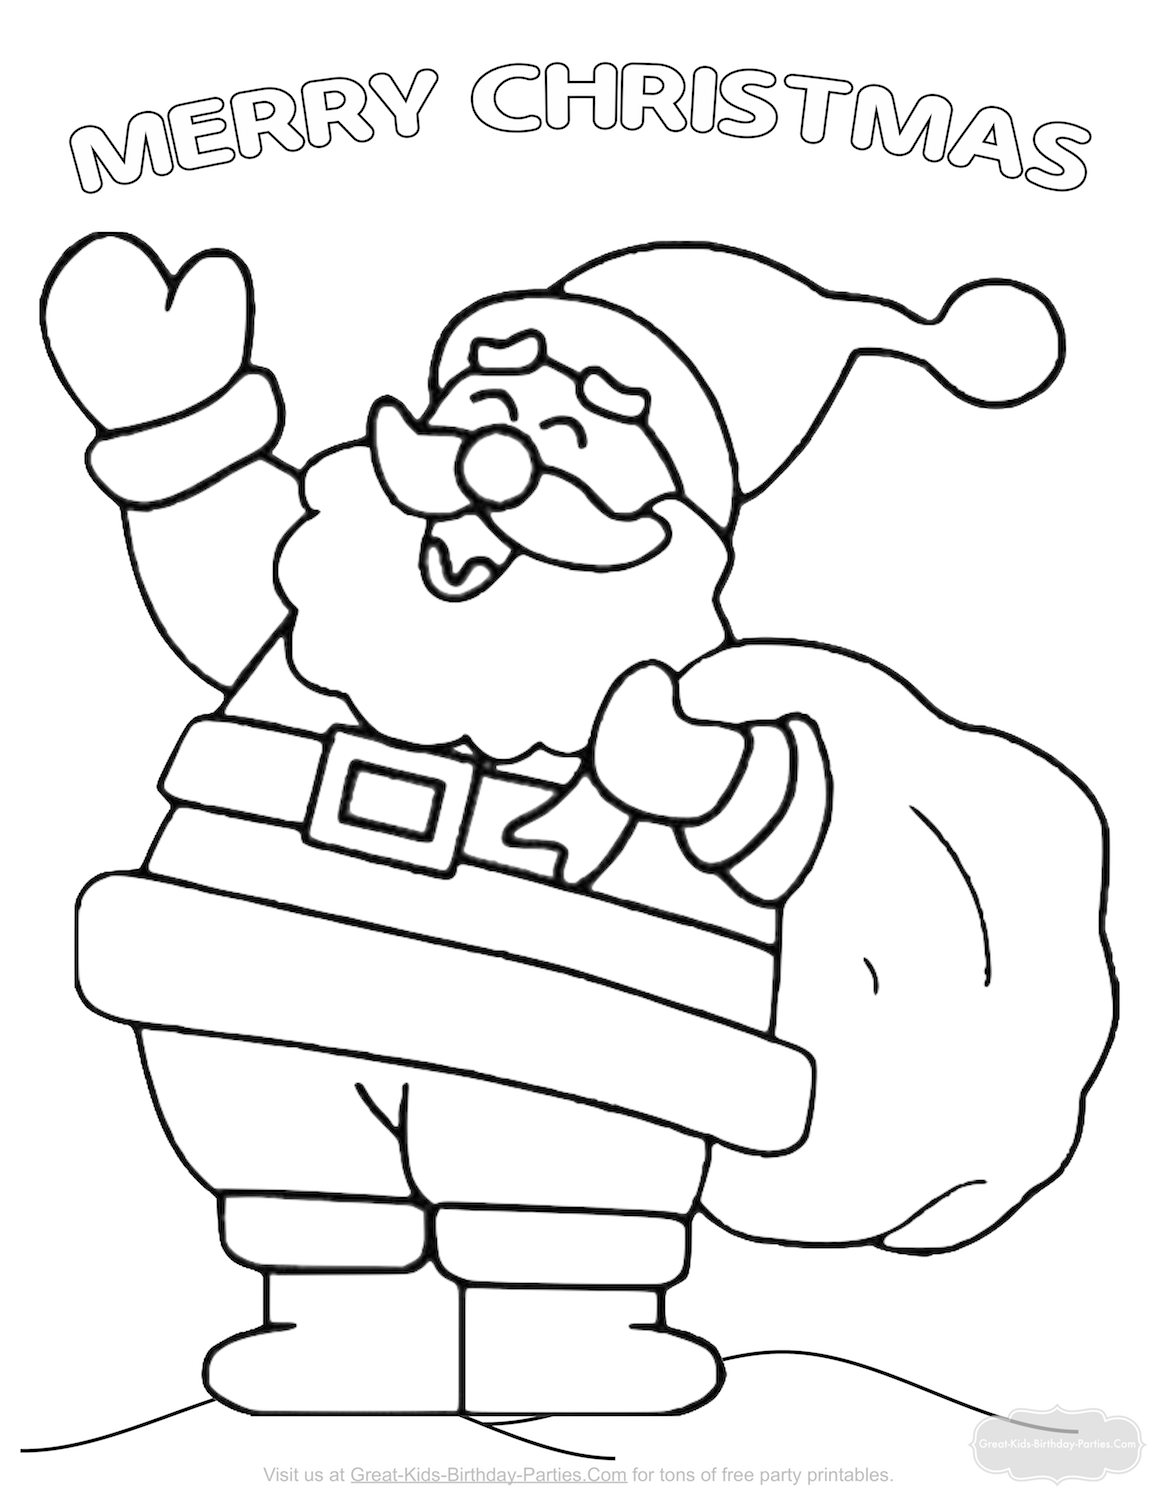 Christmas Coloring Pages Games With Fun Stuff For Kids Pinterest